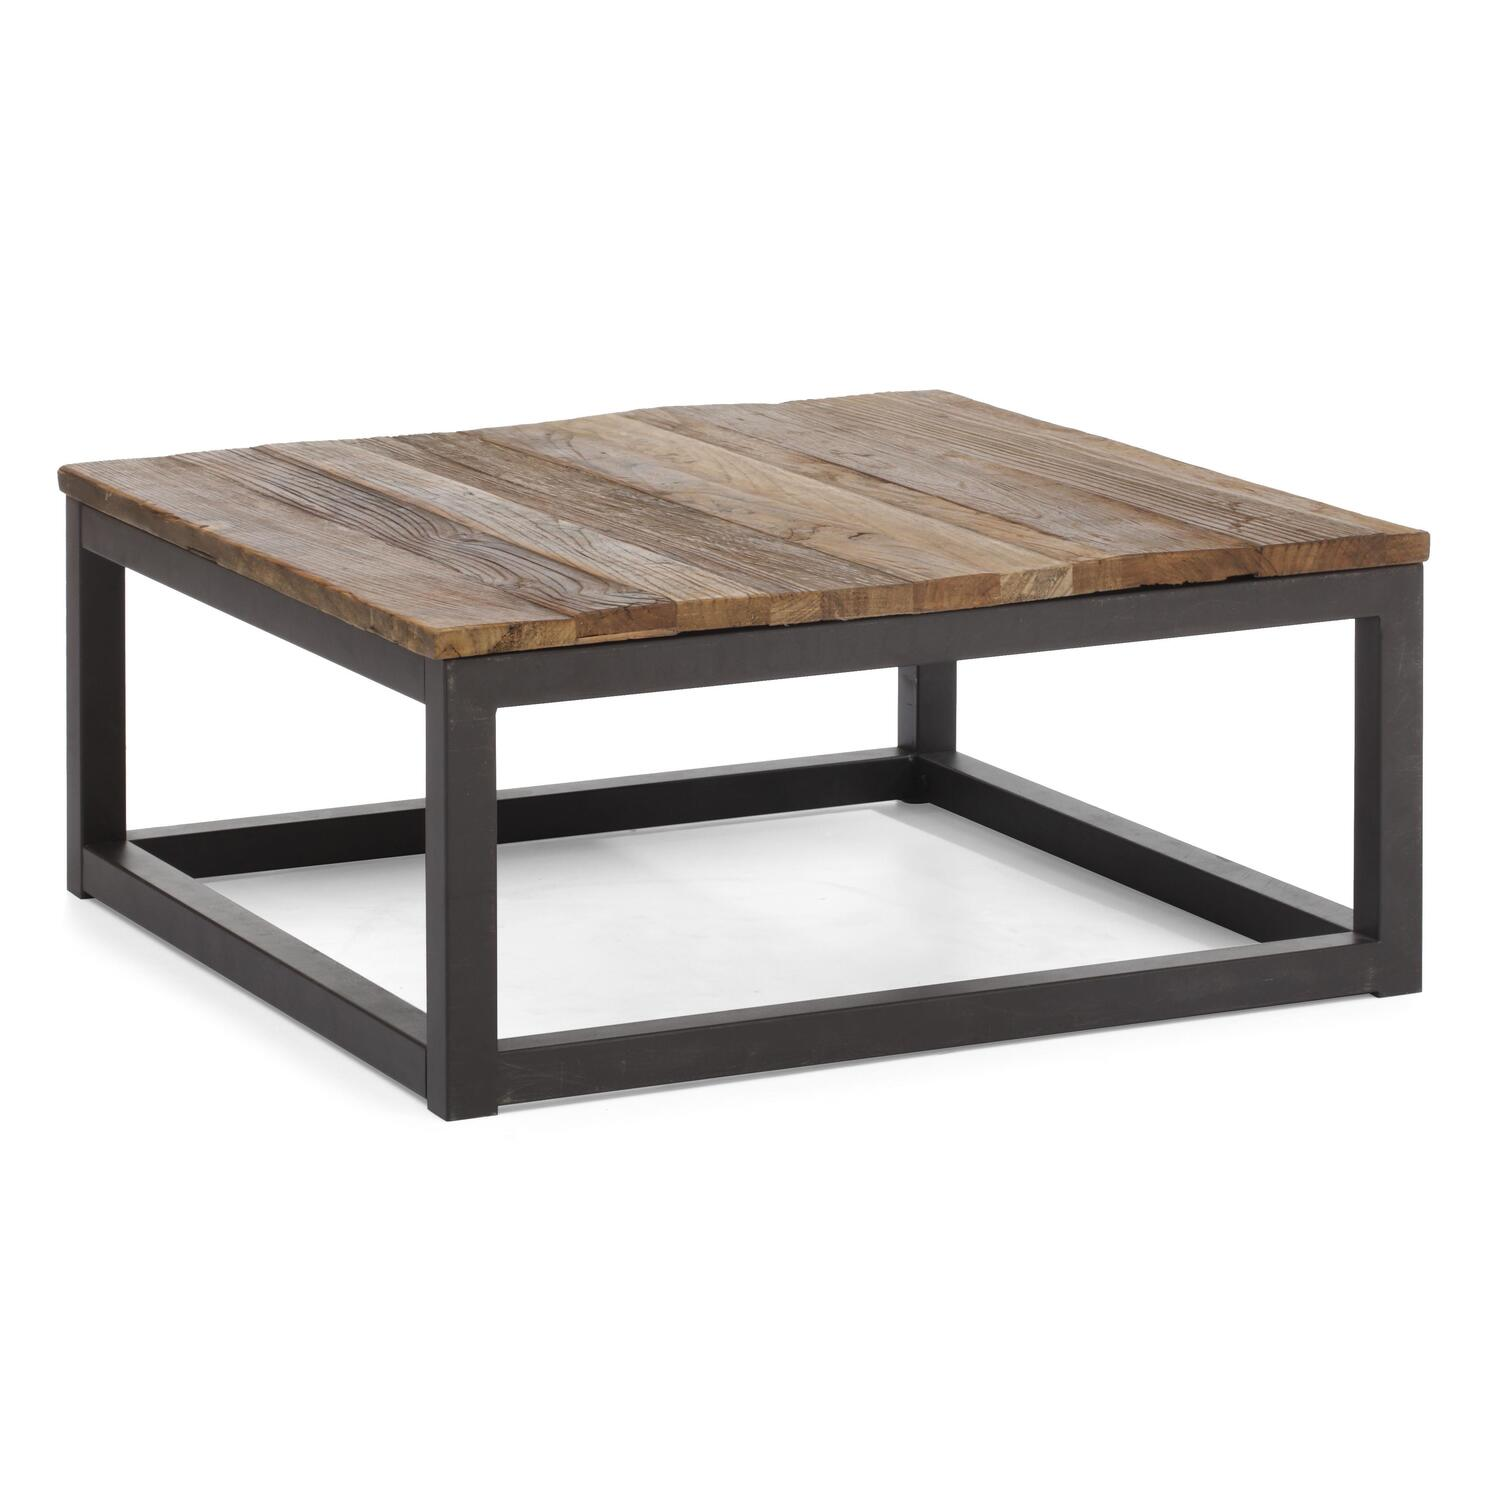 Zuo modern civic center square coffee table by oj commerce 98122 Furniture coffee tables